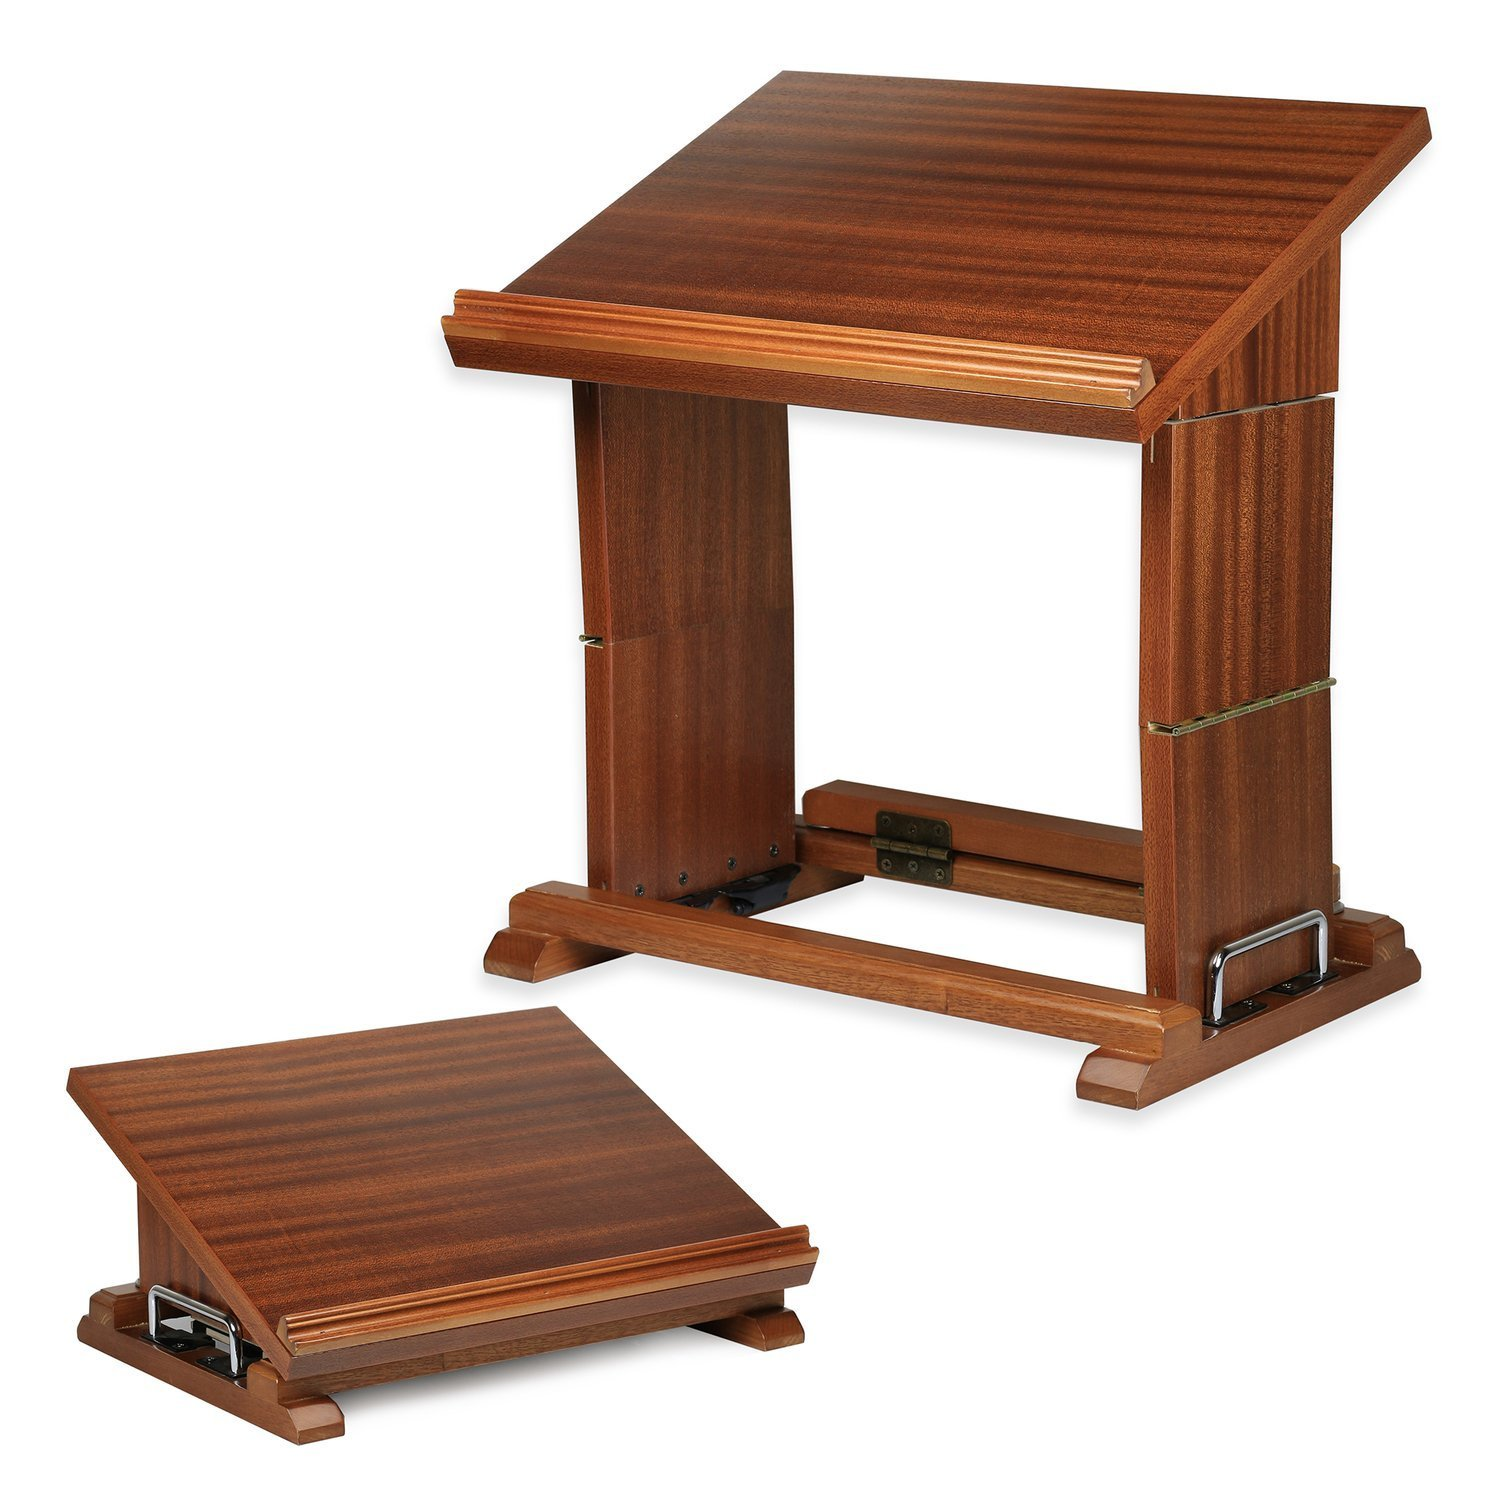 Adjustable & Portable Reading Book Stand - Document Holder Shtender For Sitting and Standing position by Best Woodwork